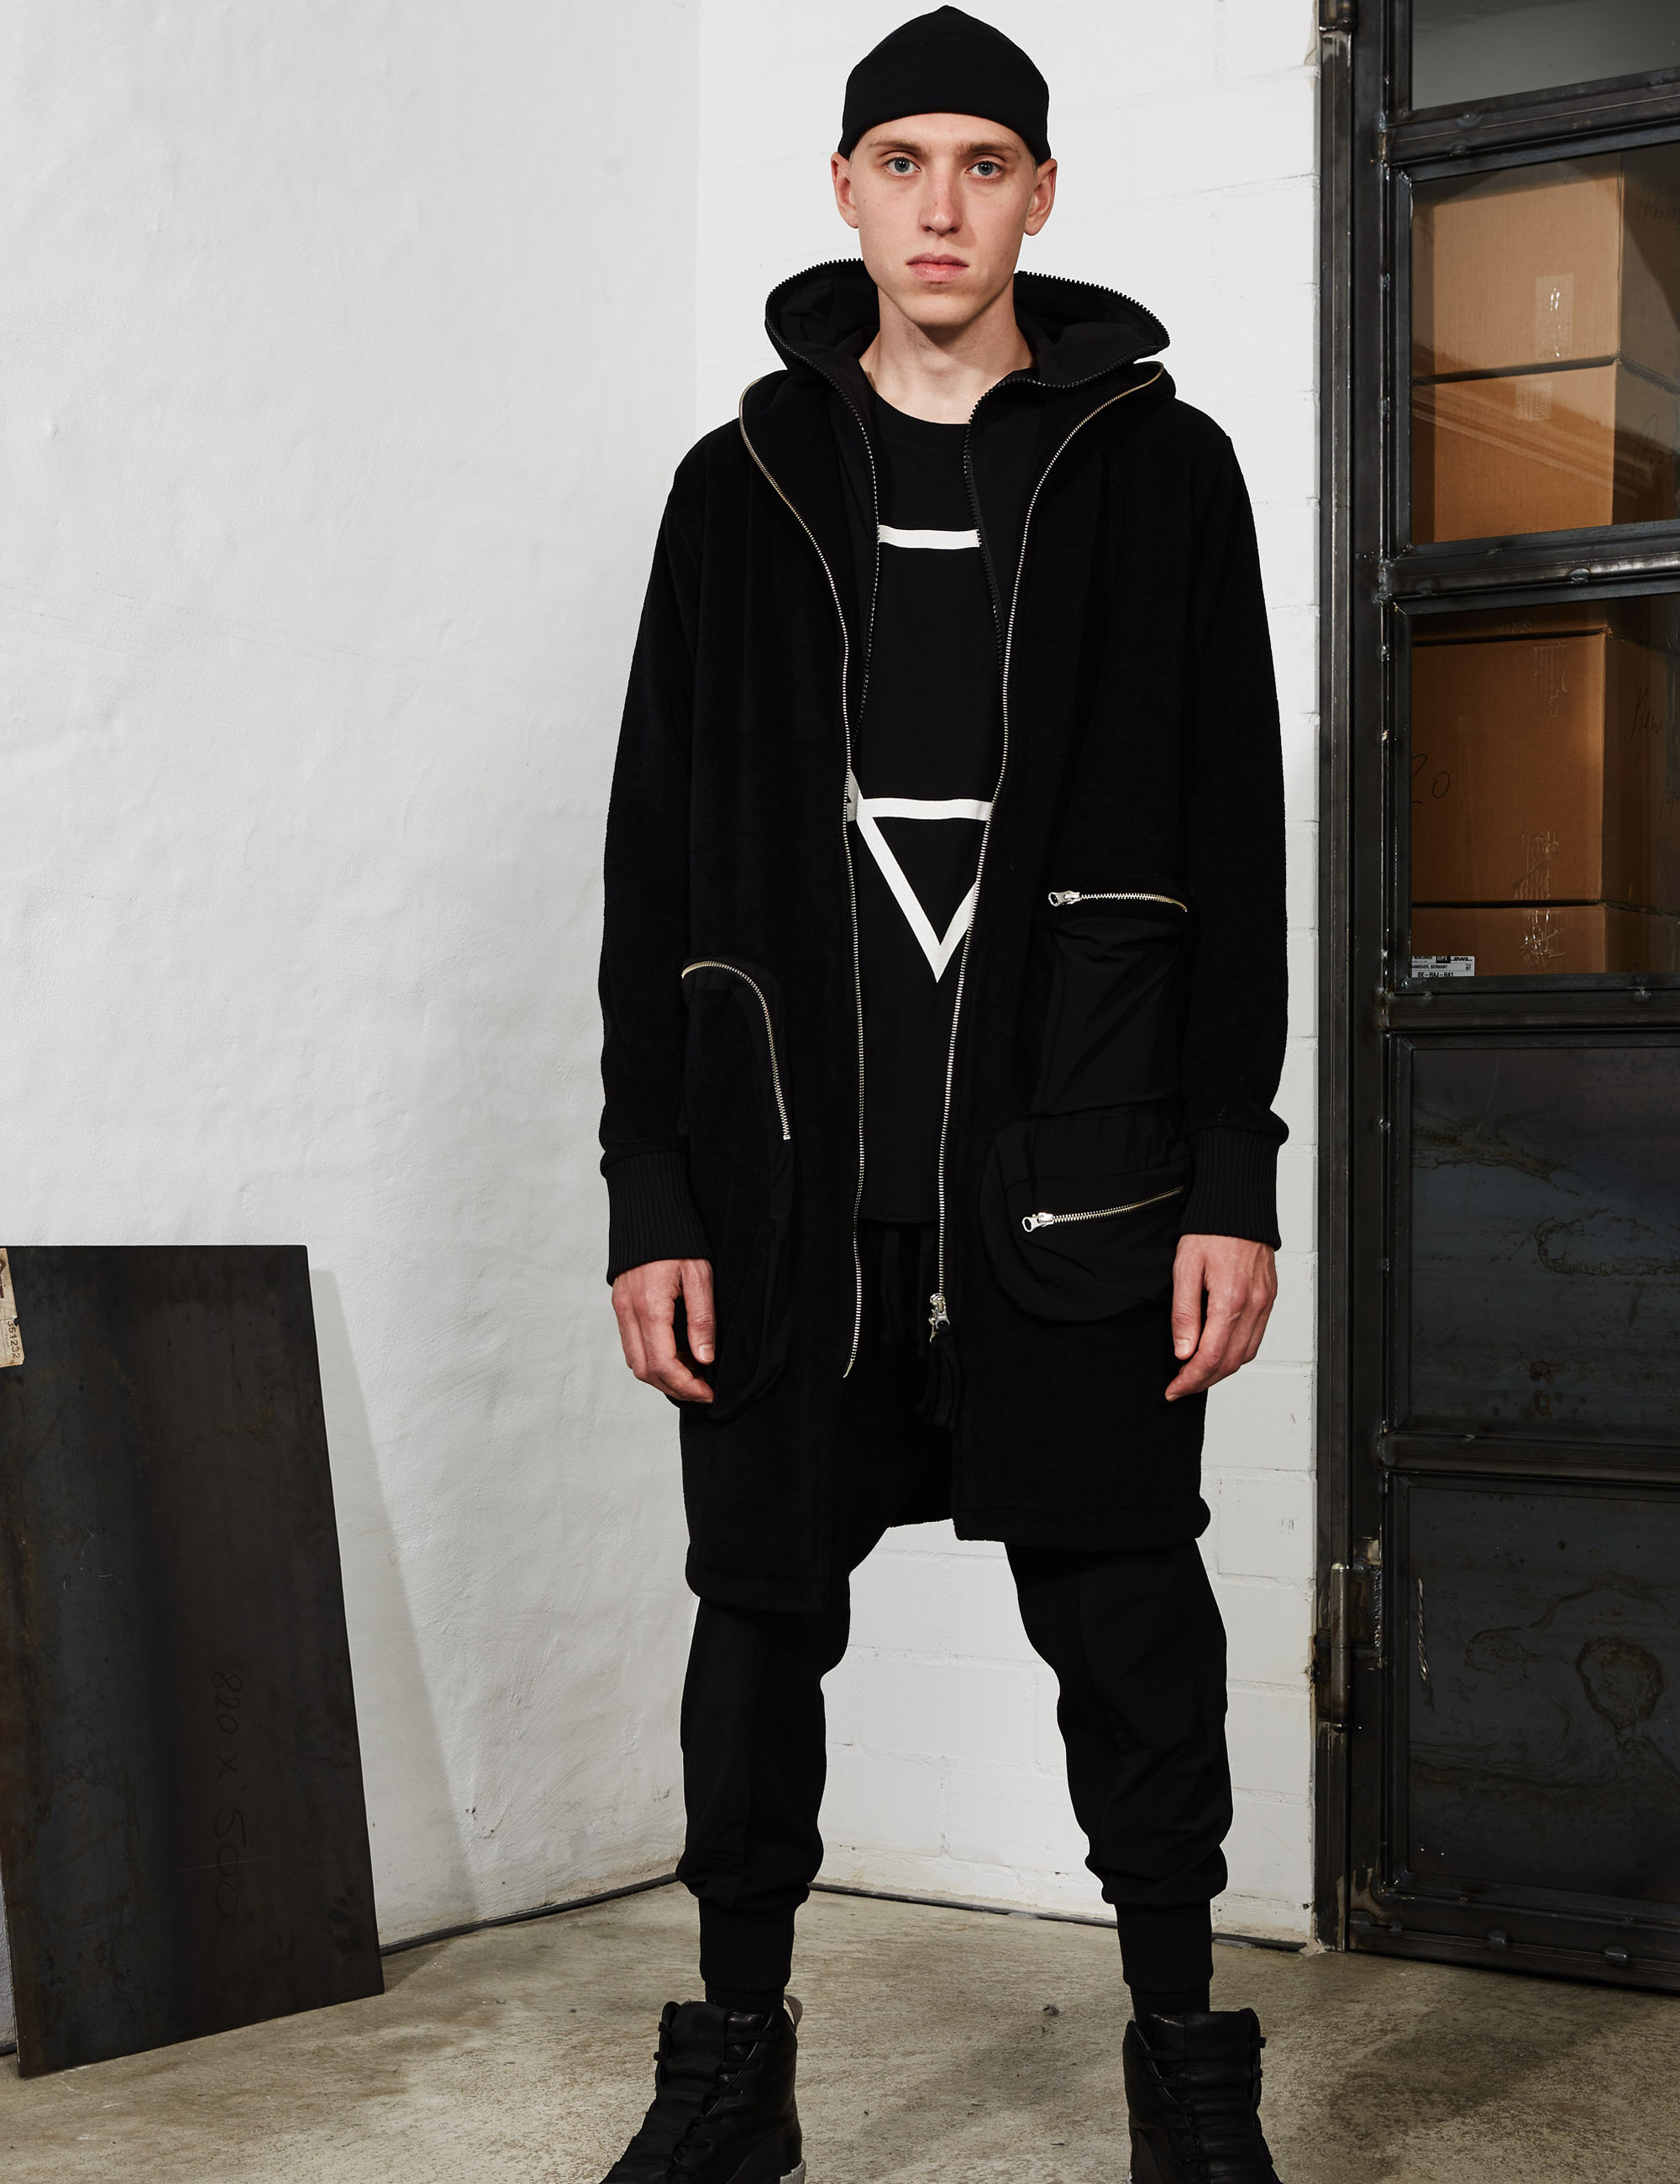 Thom / Krom AW20 LOOKBOOK